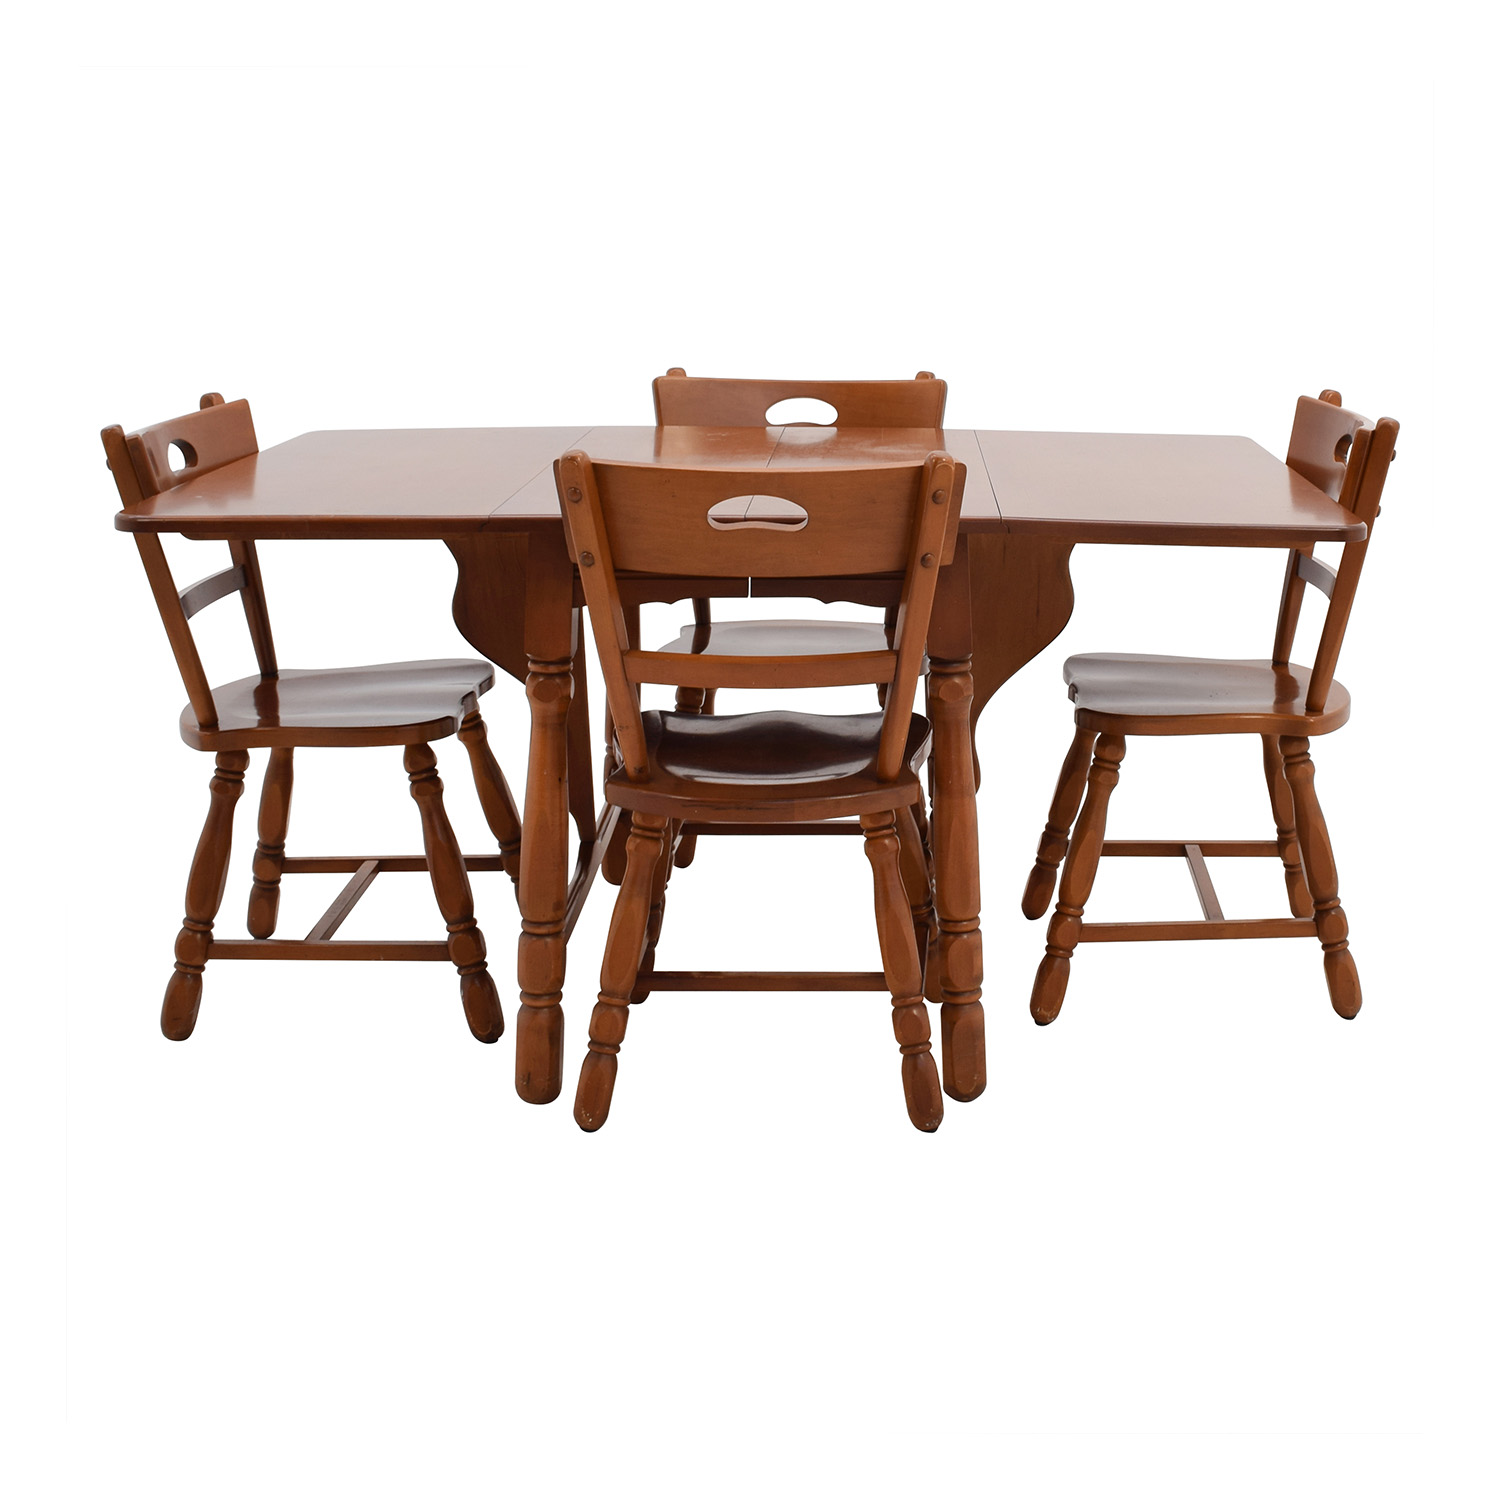 Maple Dining Table with Four Matching Chairs dimensions